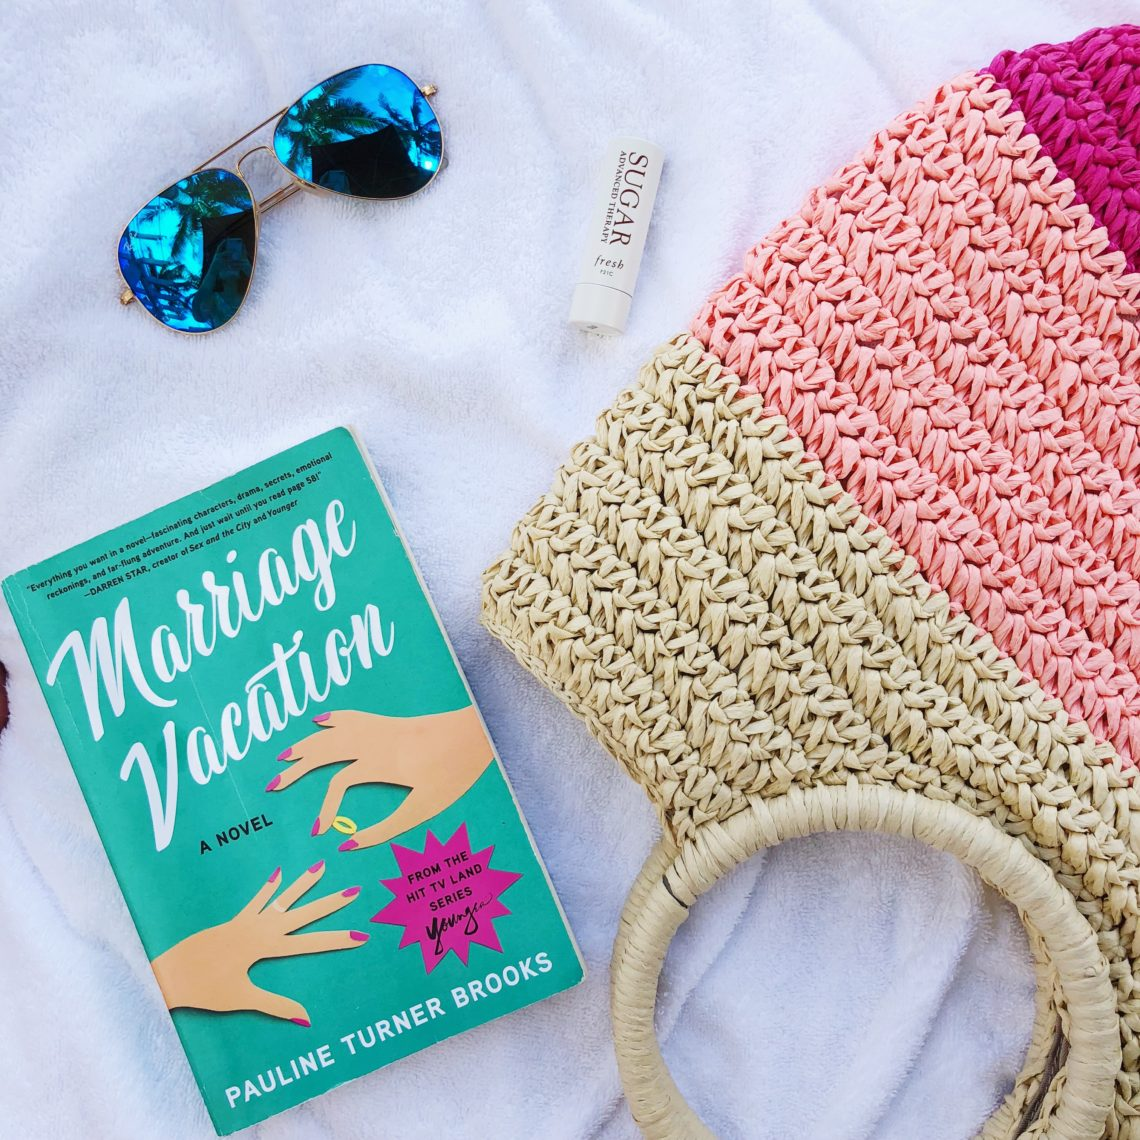 Marriage Vacation book // the modern savvy - Alyson's Current Favorites // June 2018, featured by popular Florida style blogger, The Modern Savvy